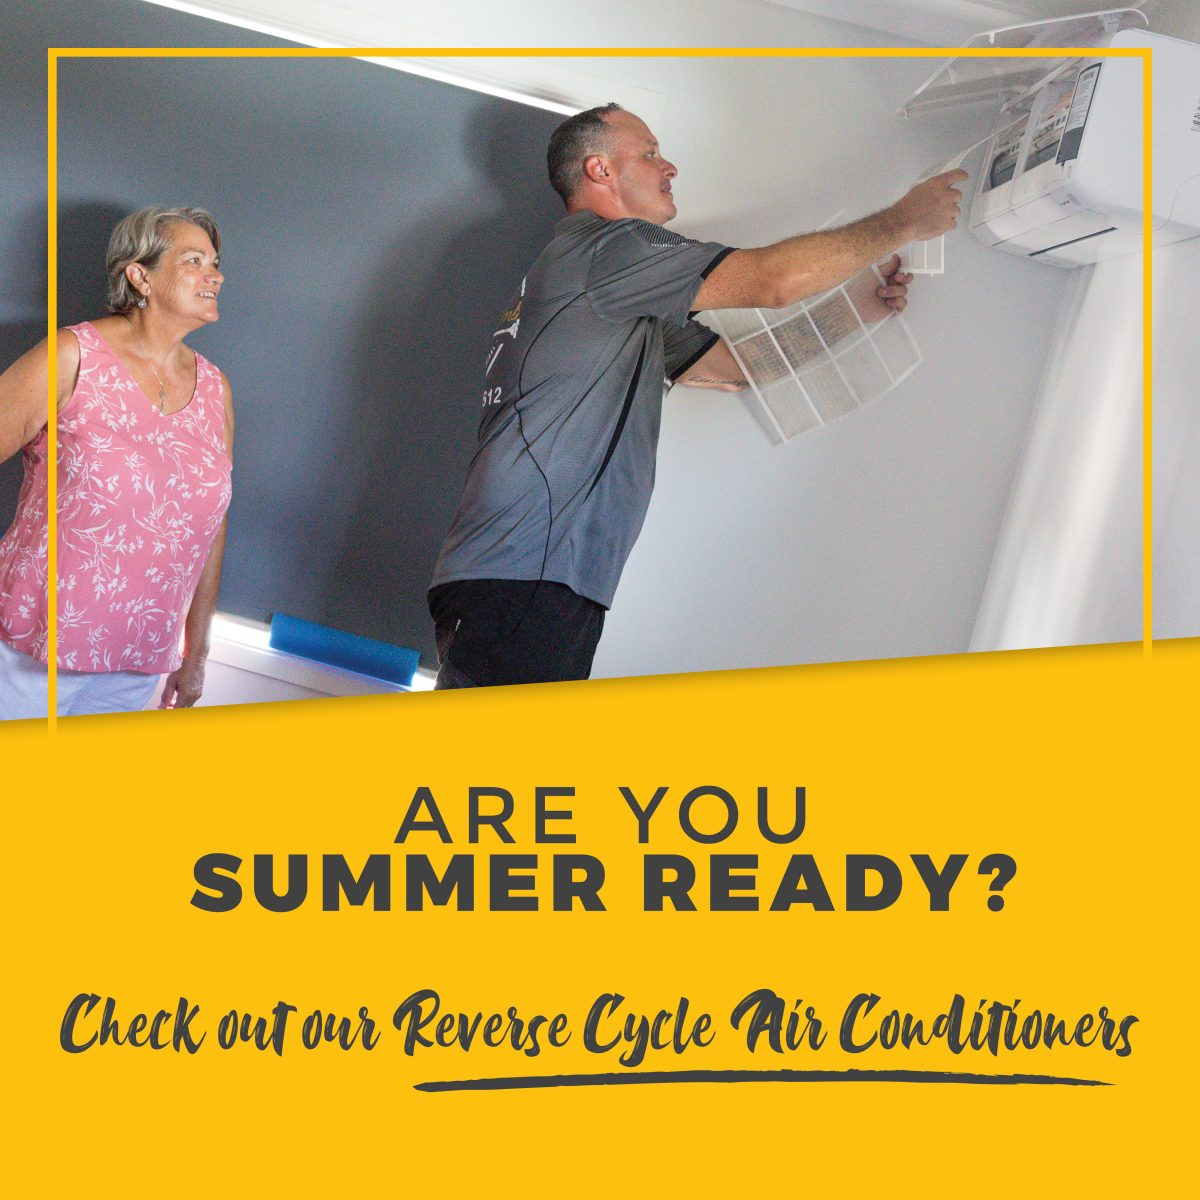 air conditioning installation - Electroplumb